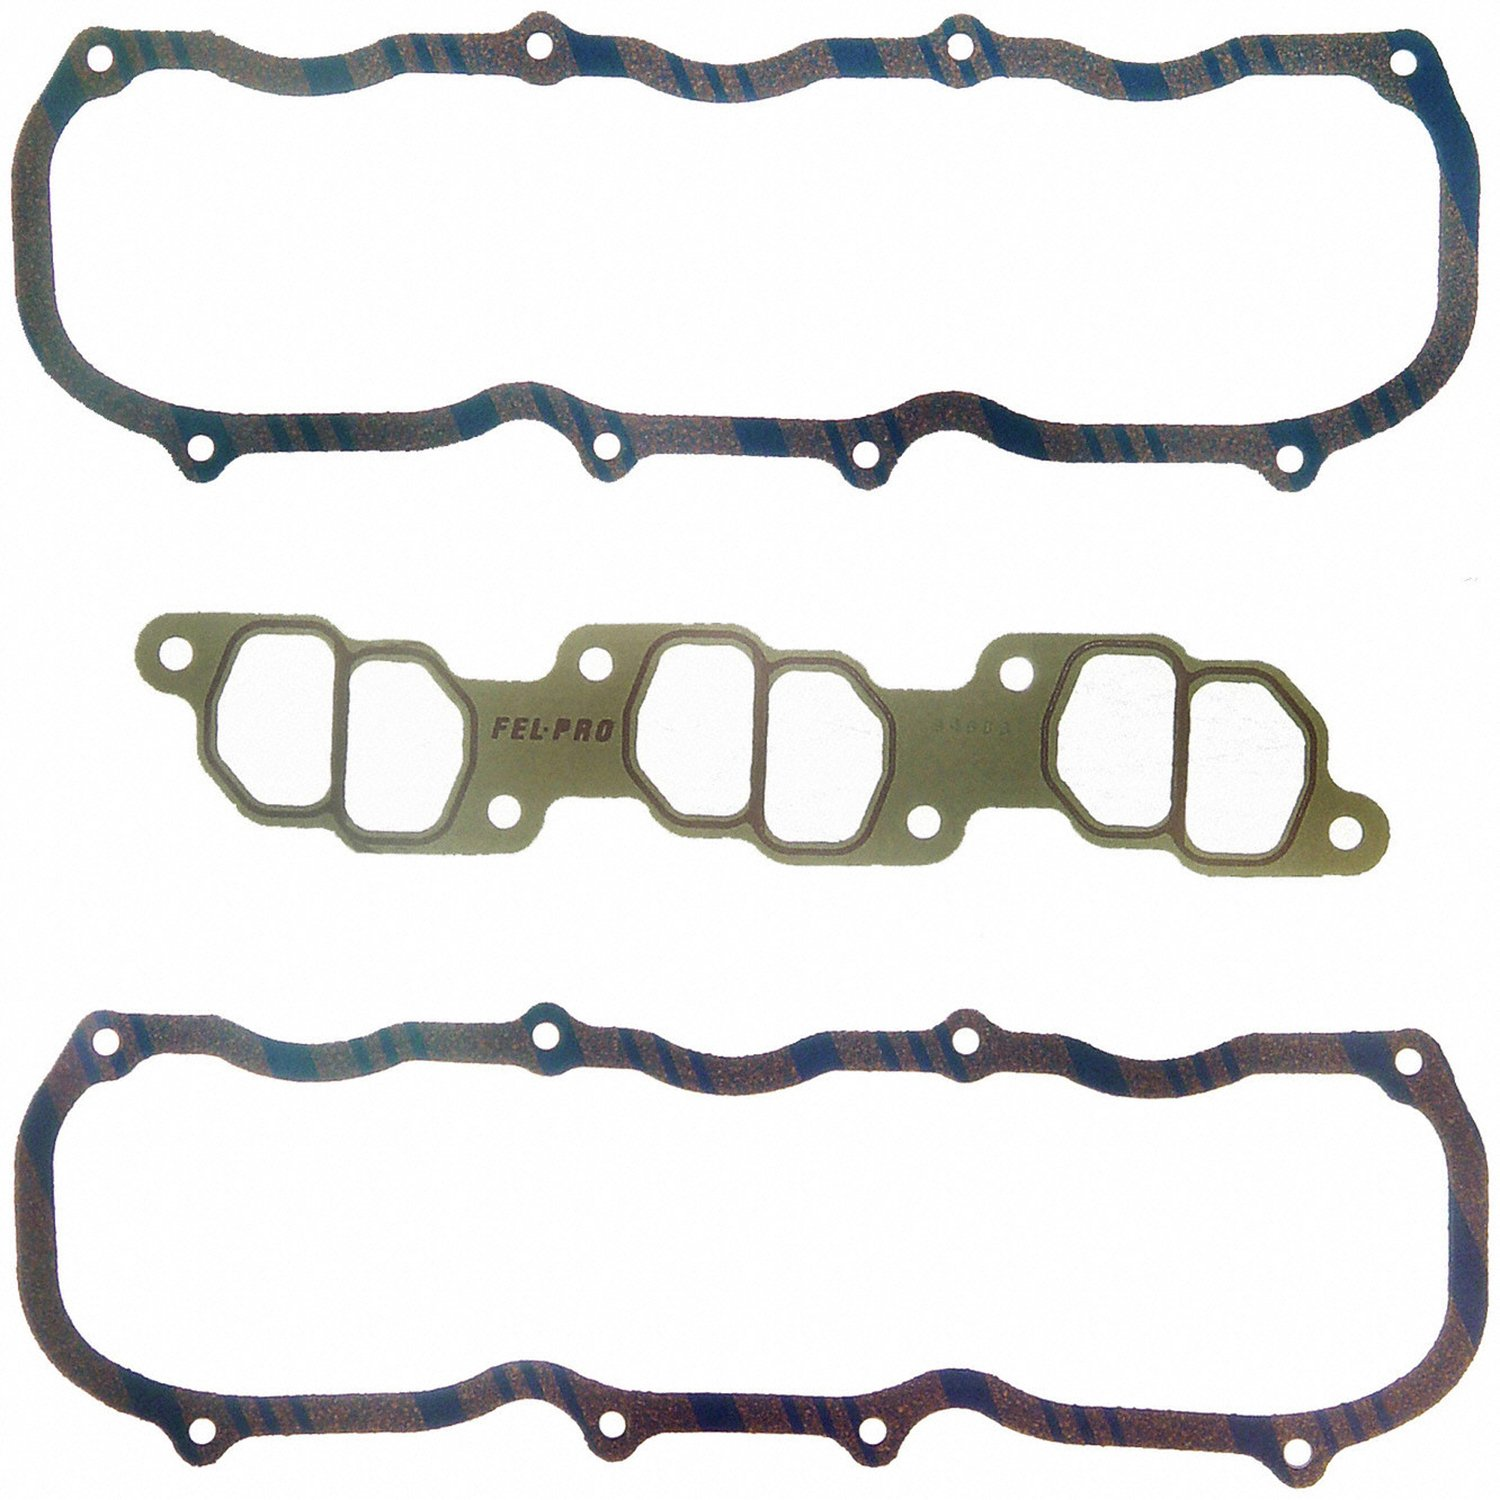 hight resolution of 2000 ford ranger engine valve cover gasket set fp vs 50368 c